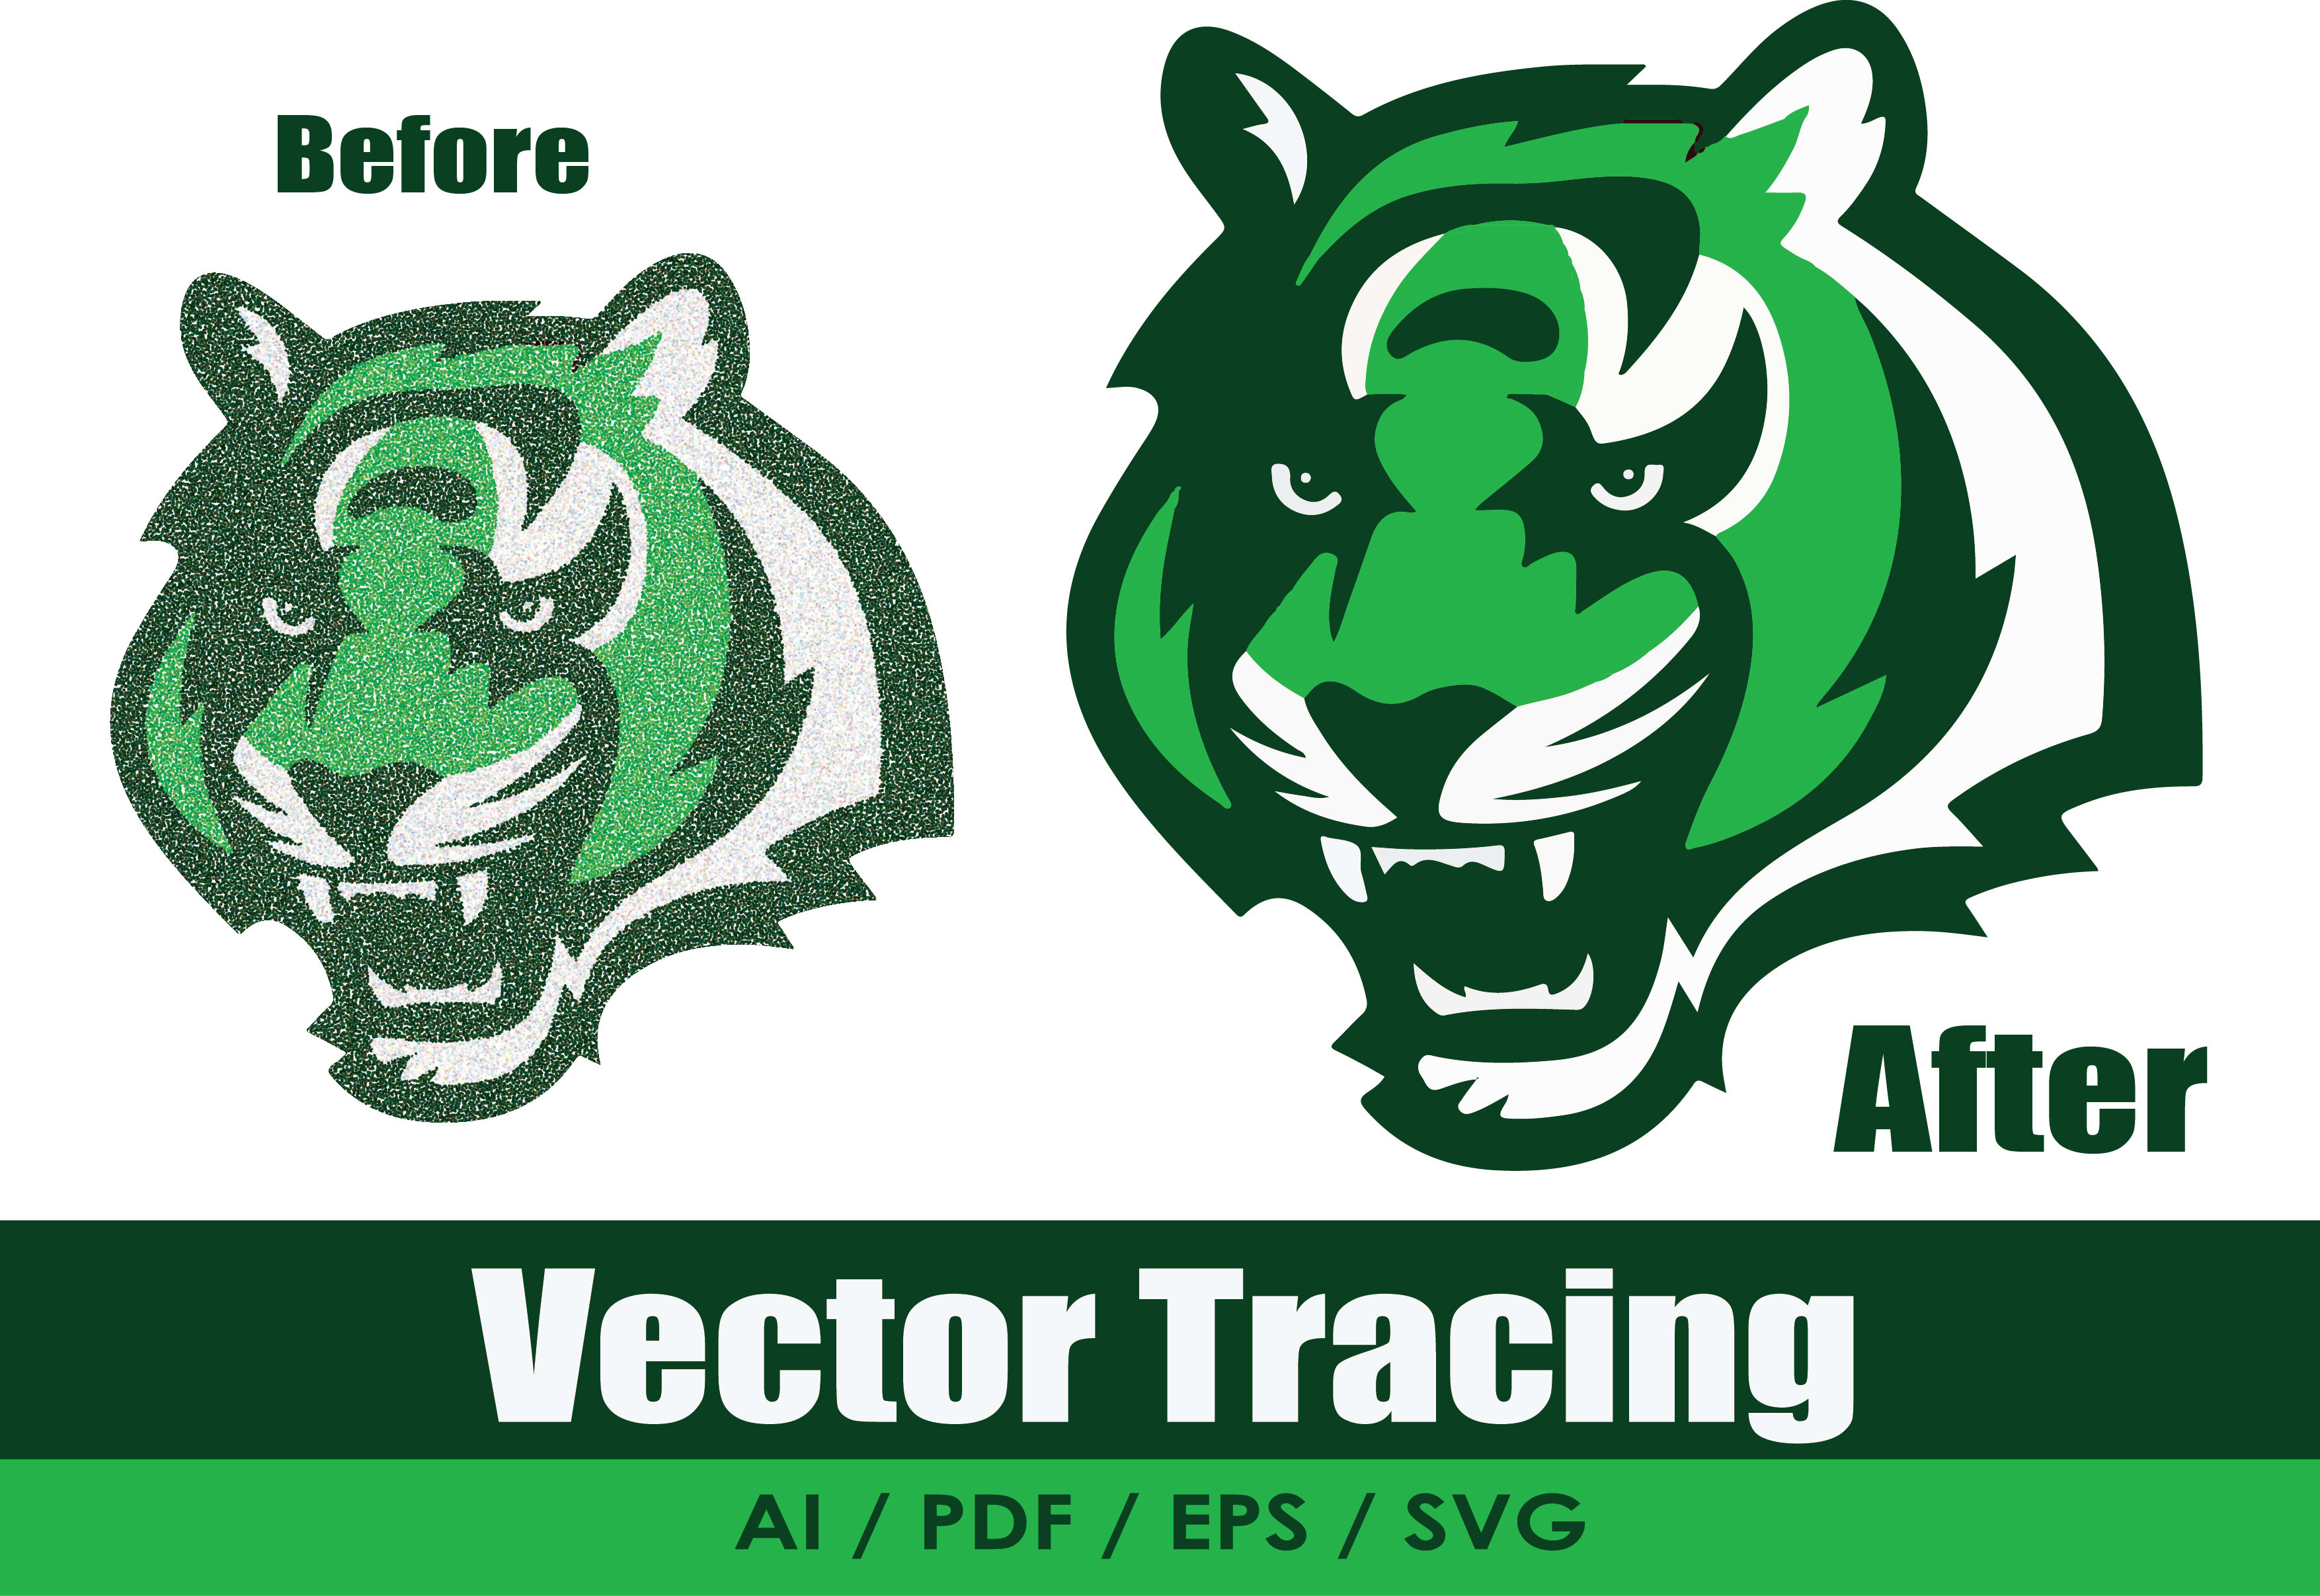 I will change over to vector tracing,  redraw logo,  vectorize picture